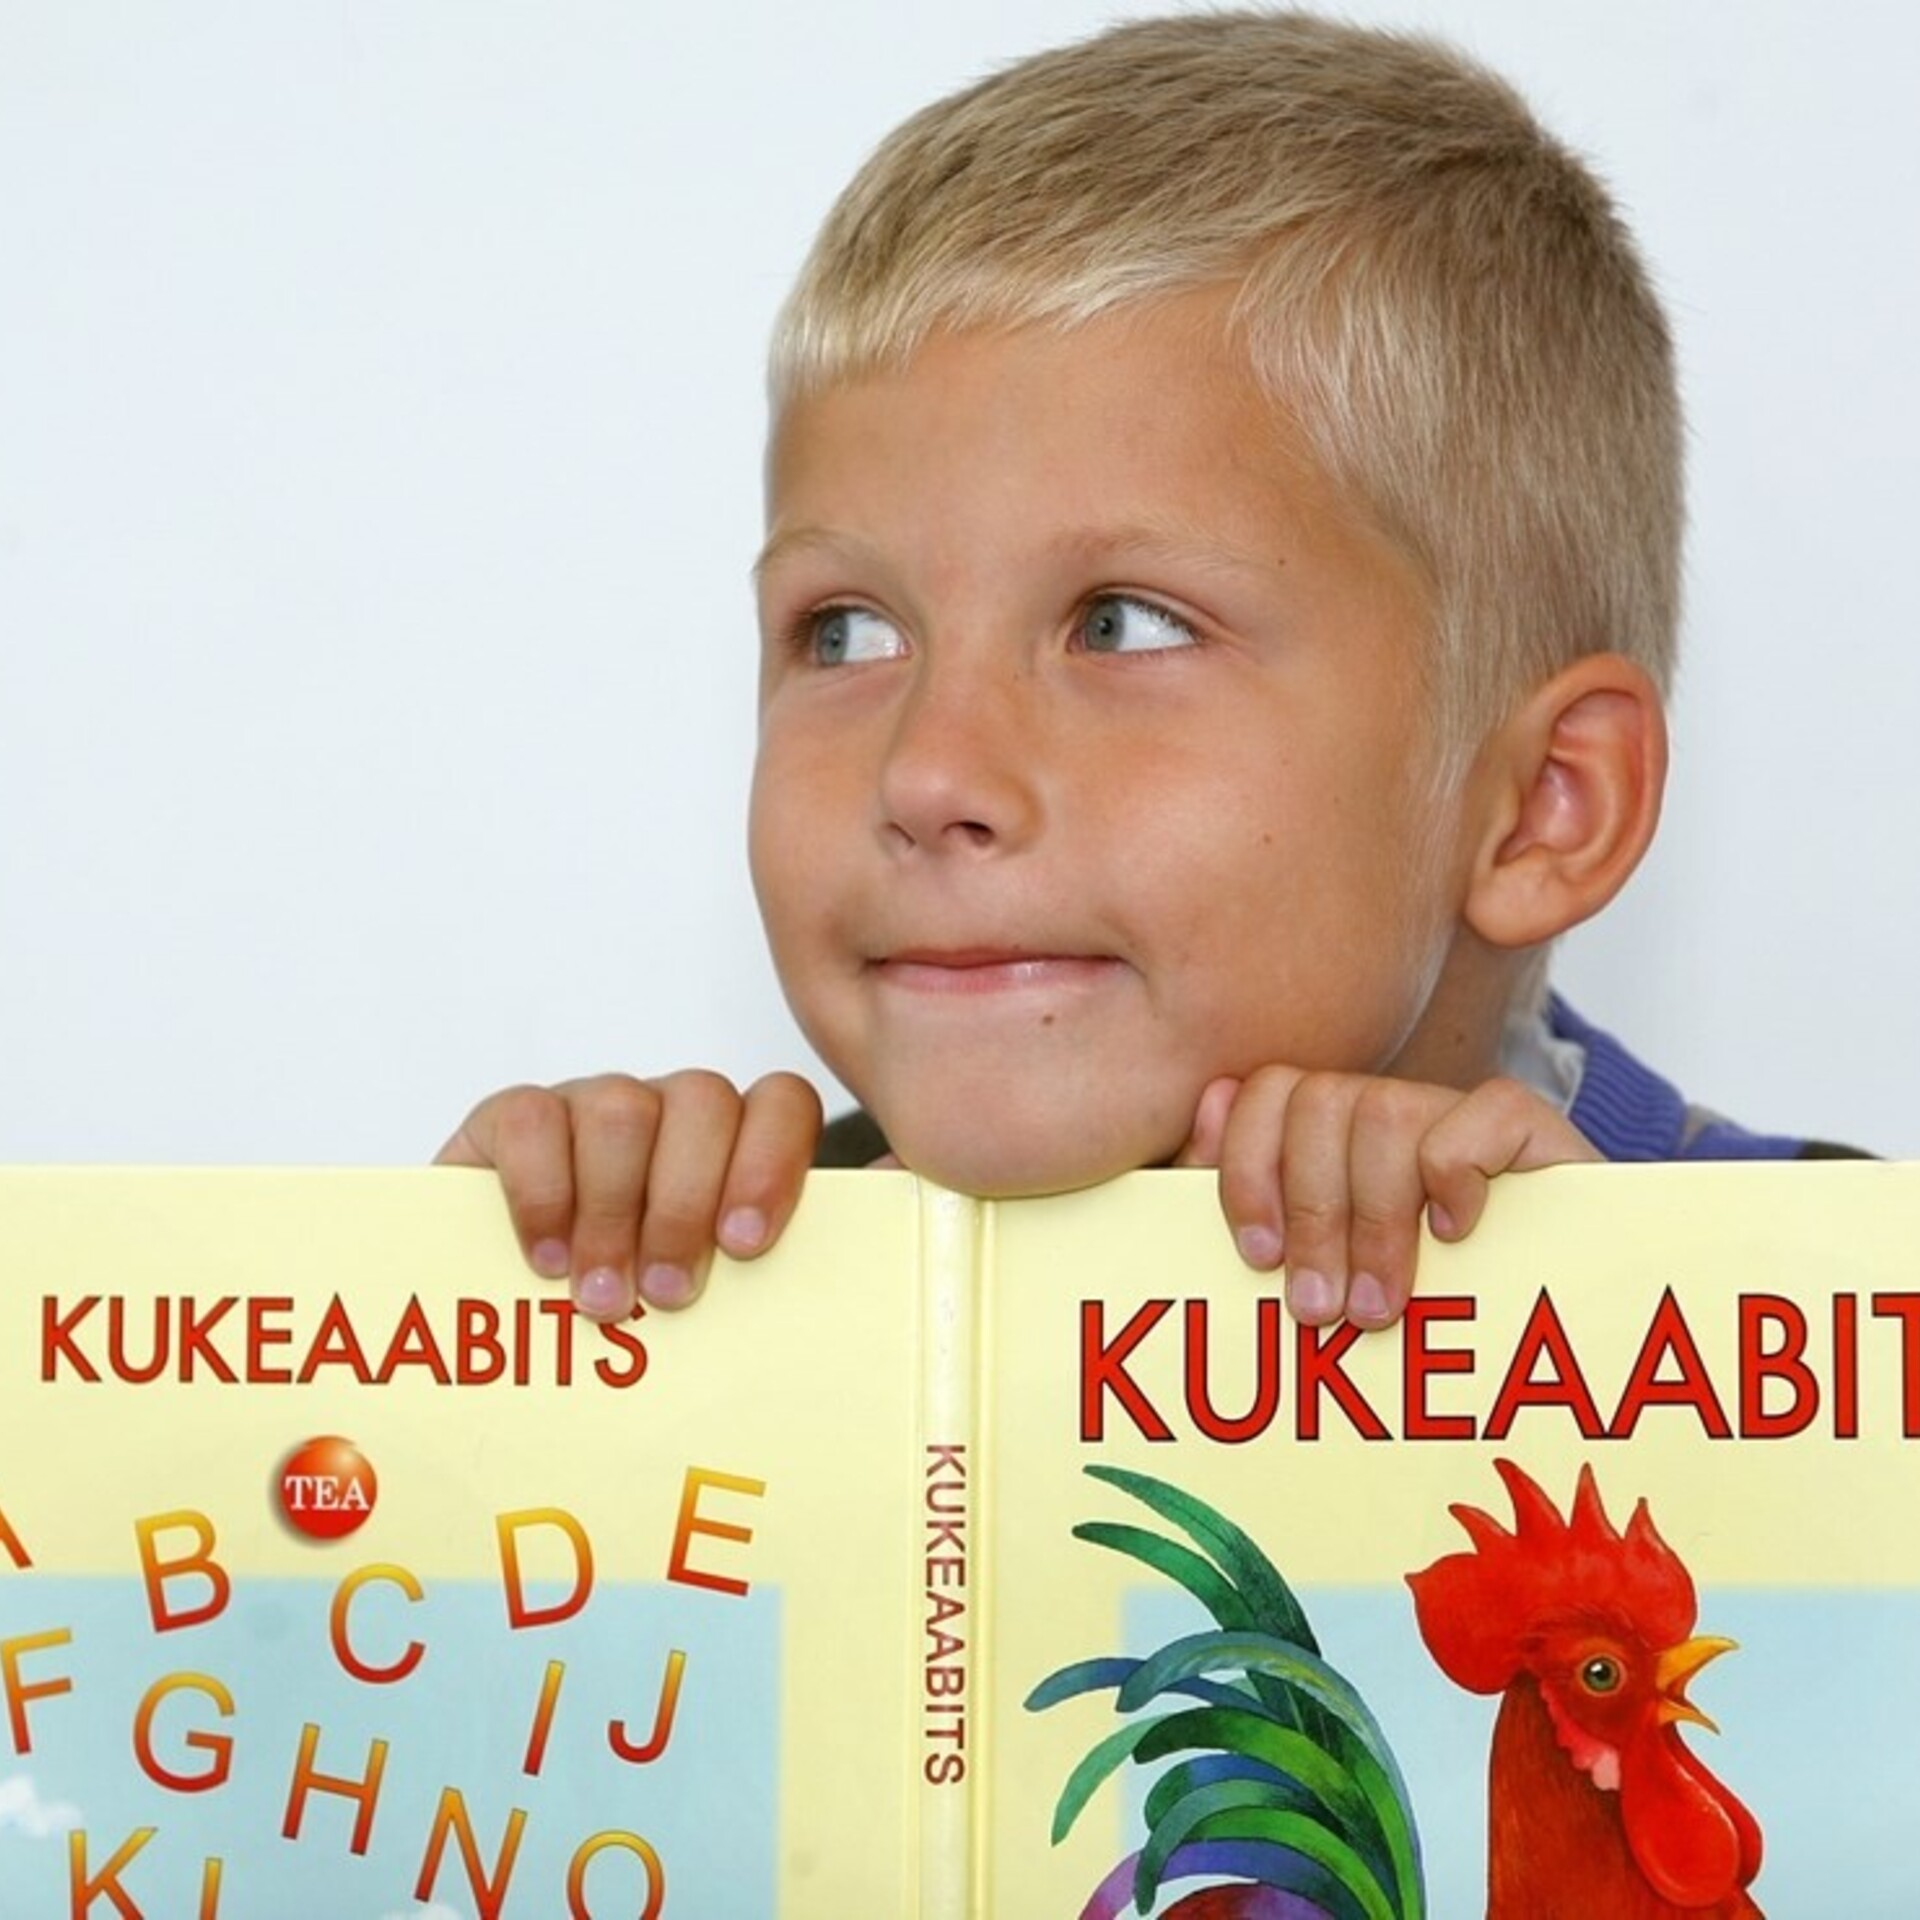 Is Estonian difficult to learn? | Culture | ERR